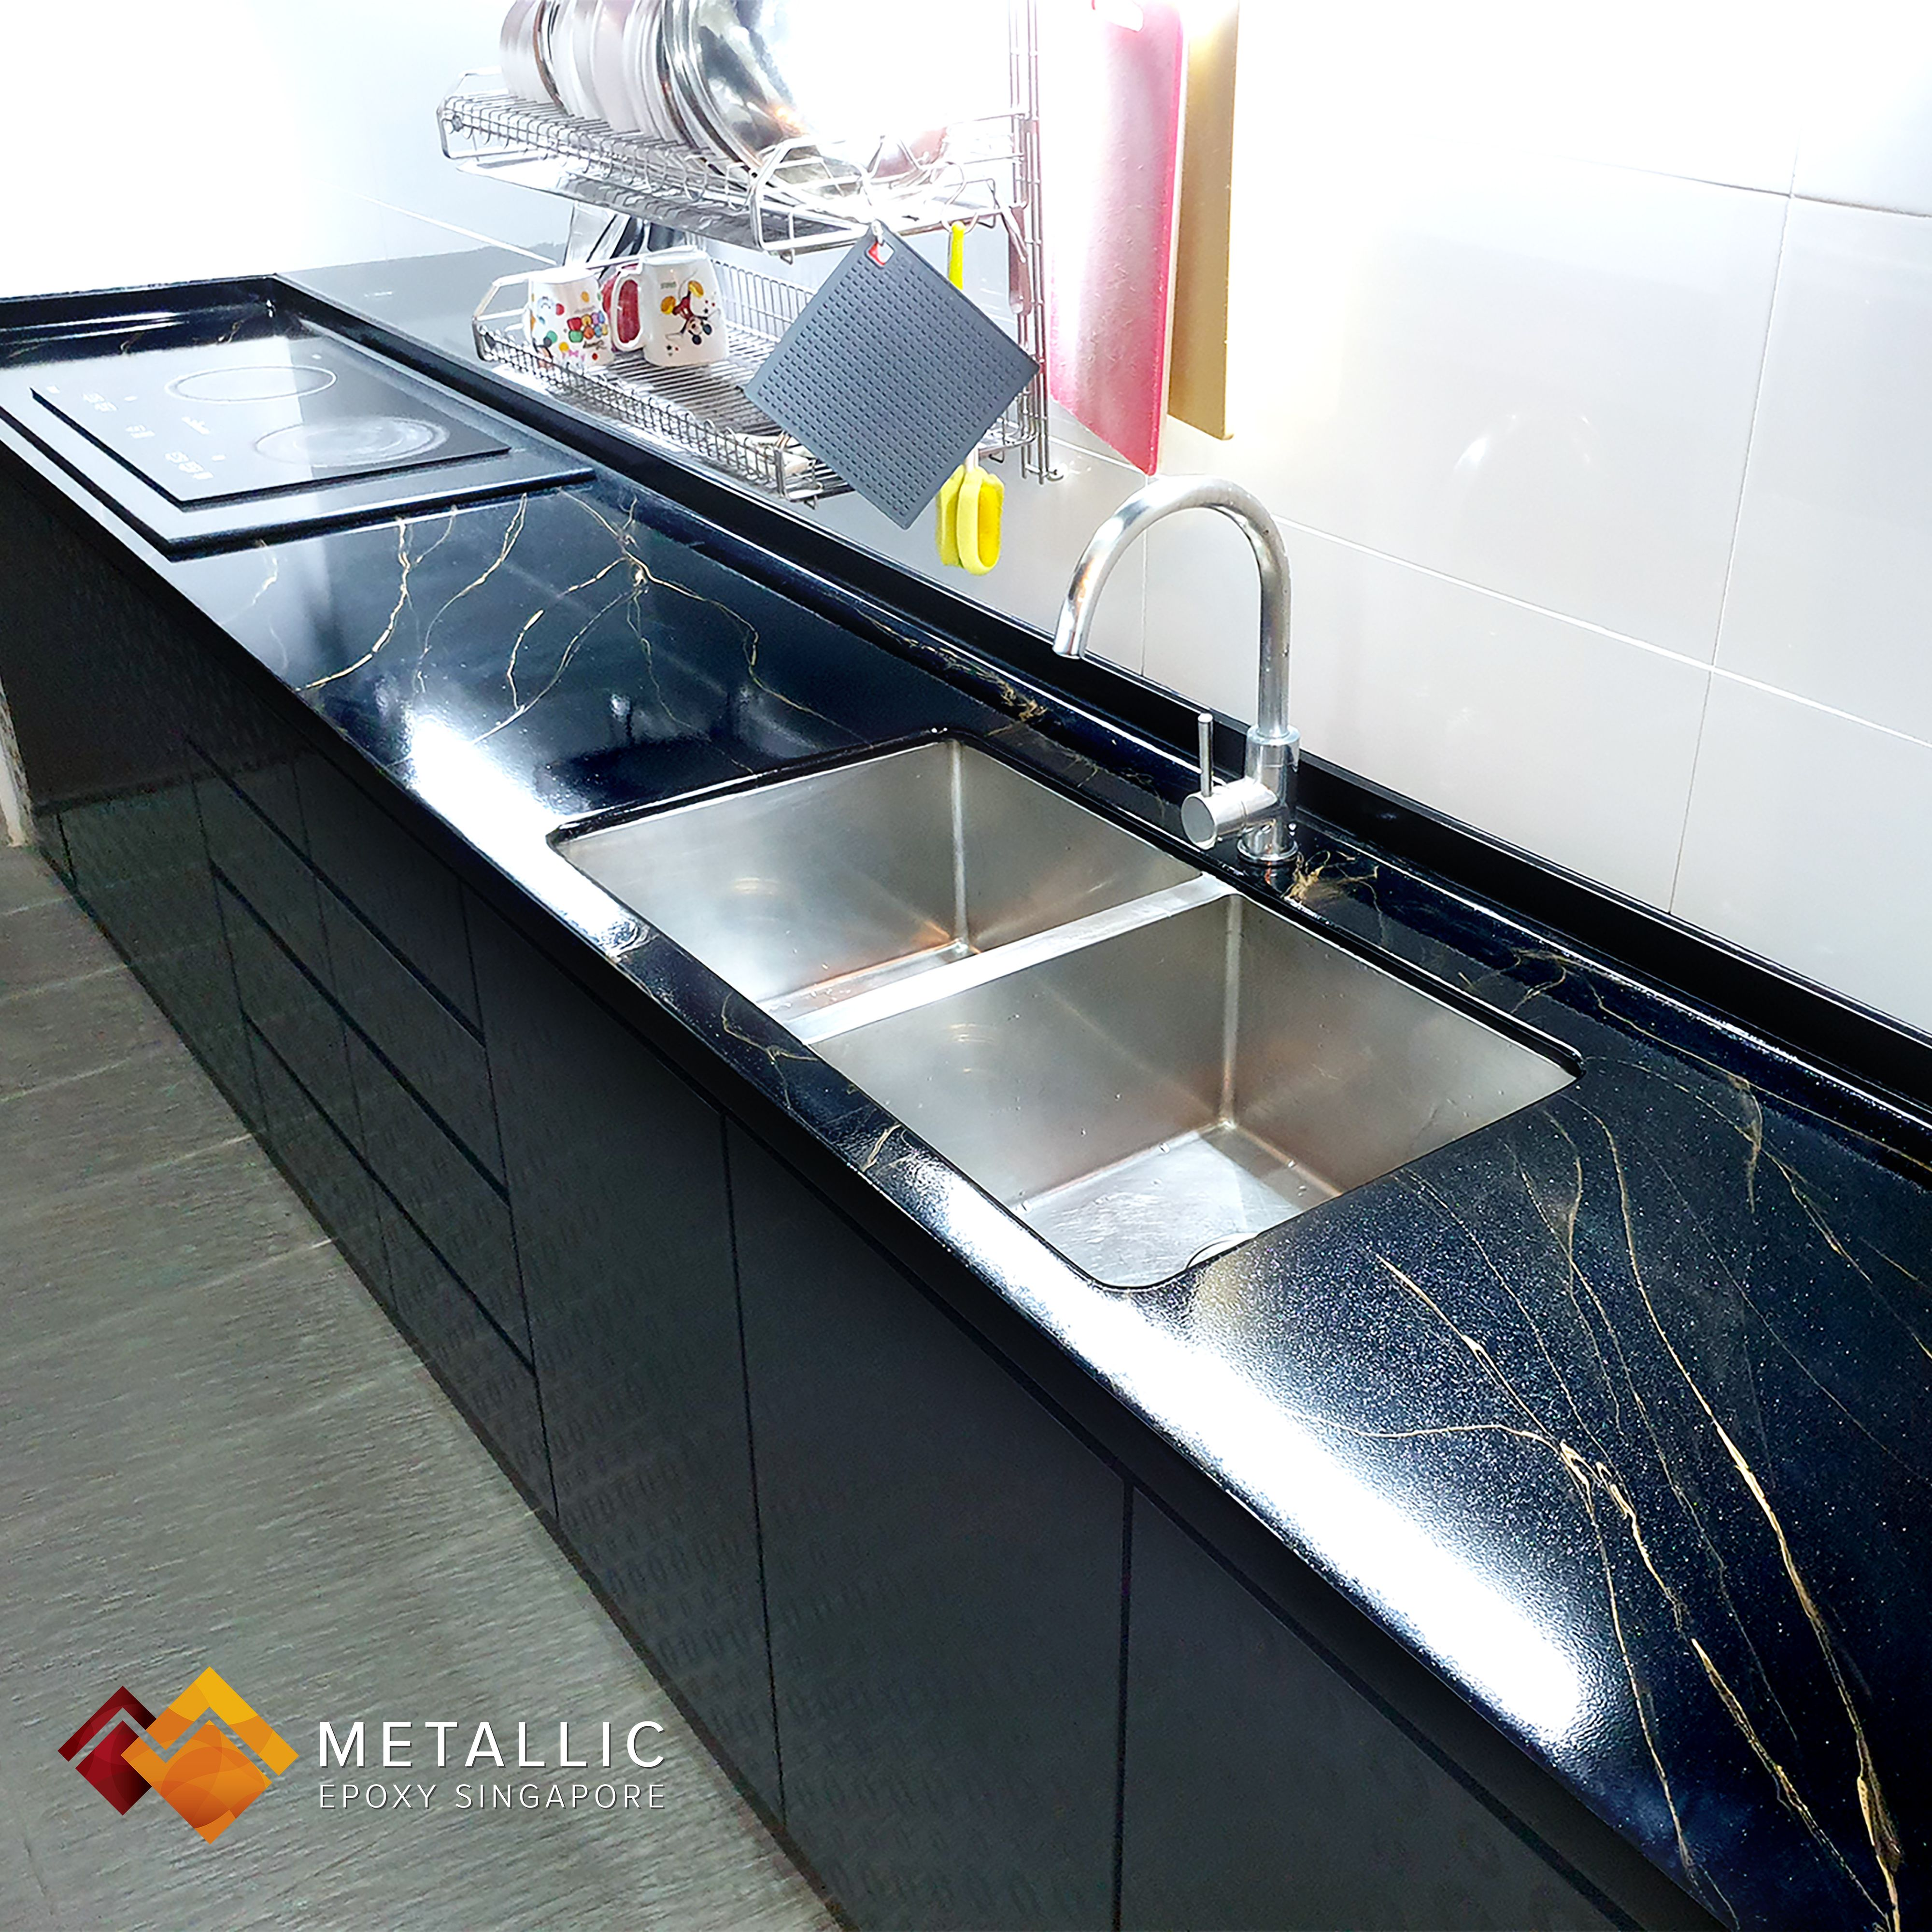 A Beautiful New Look For This Home With A Pure Metallic Black Countertop Coating With Gold Veins For The Luxurious Marble Feel A Touch Of Liquid Diamond Gives